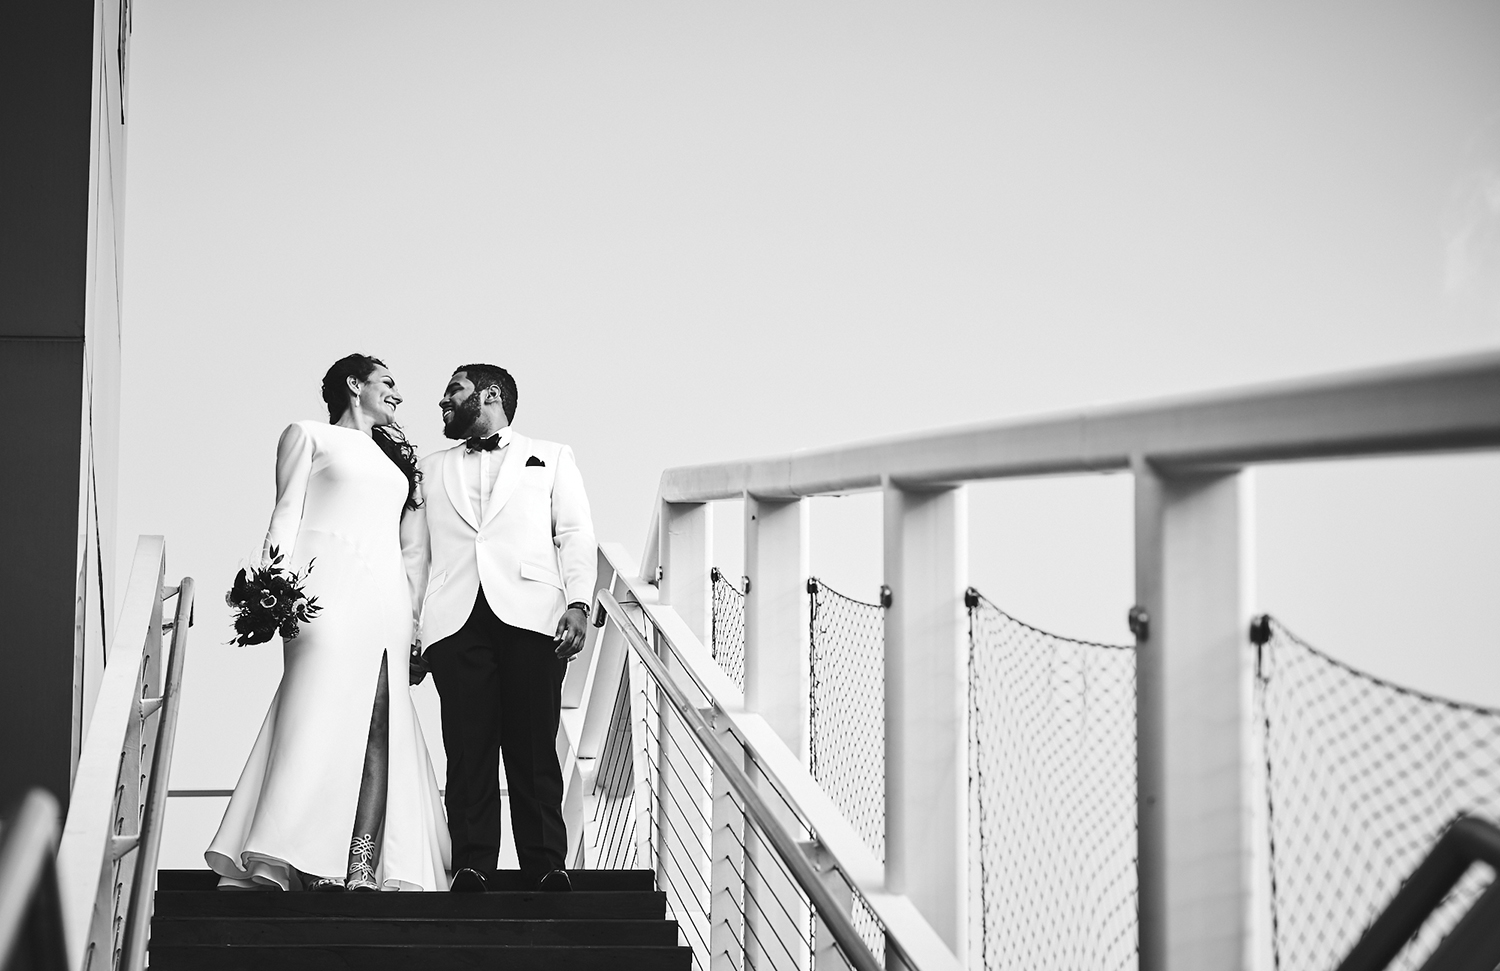 170930_WilliamValeWeddingPhotography_BrooklynWeddingPhotographer_By_BriJohnsonWeddings_0105.jpg